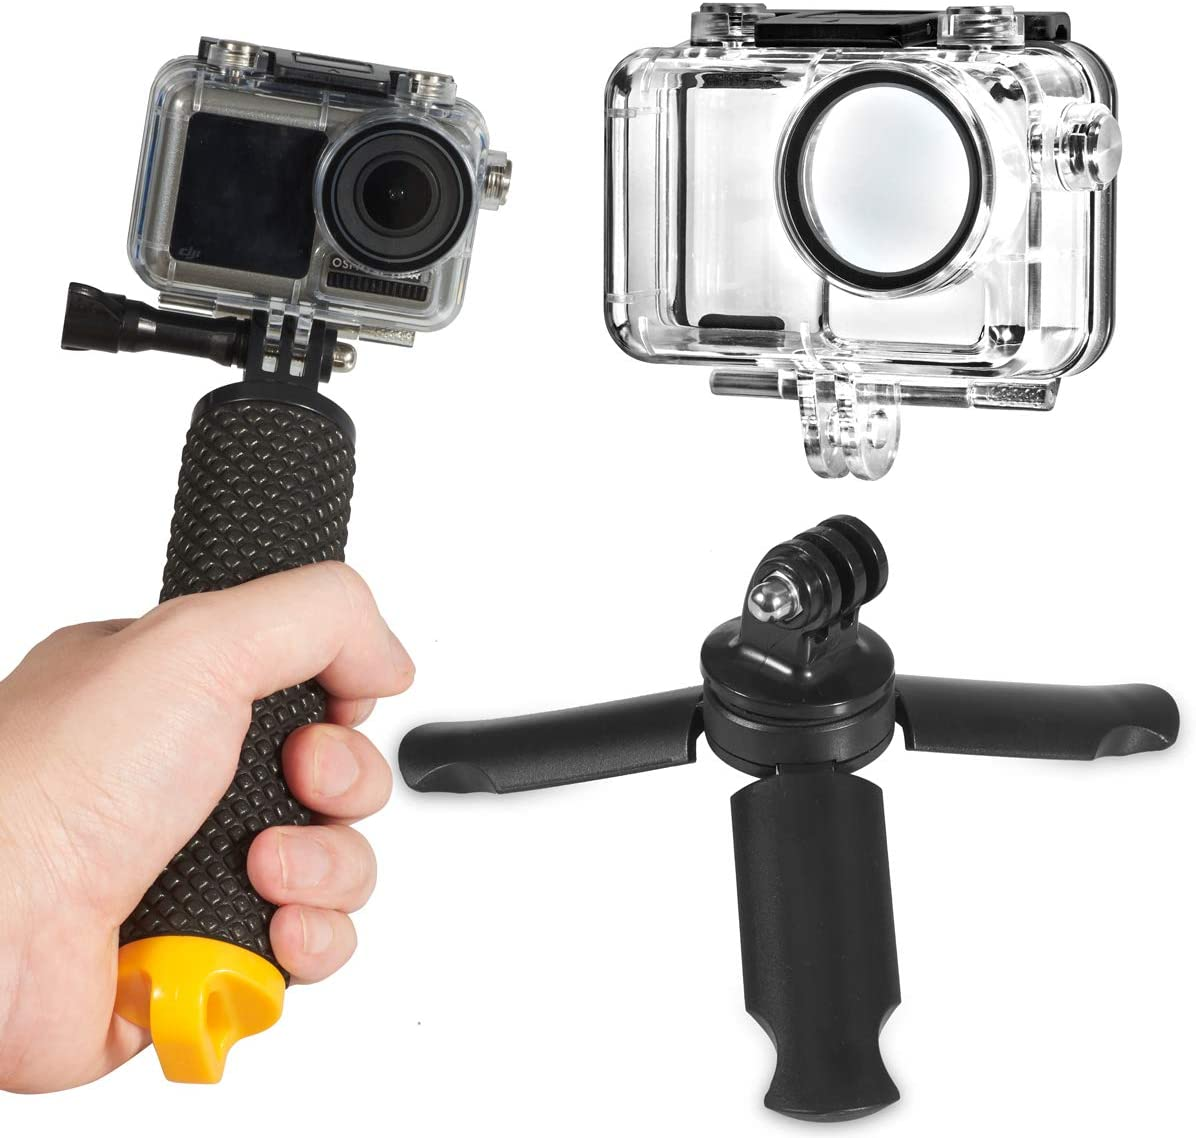 Aboom Diving Accessories Set of 4 for DJI Osmo Action, 147ft Underwater Photography Waterproof Case Cage/Floating Hand Grip/Mini Tripod/Anti Fog Inserts for Diving